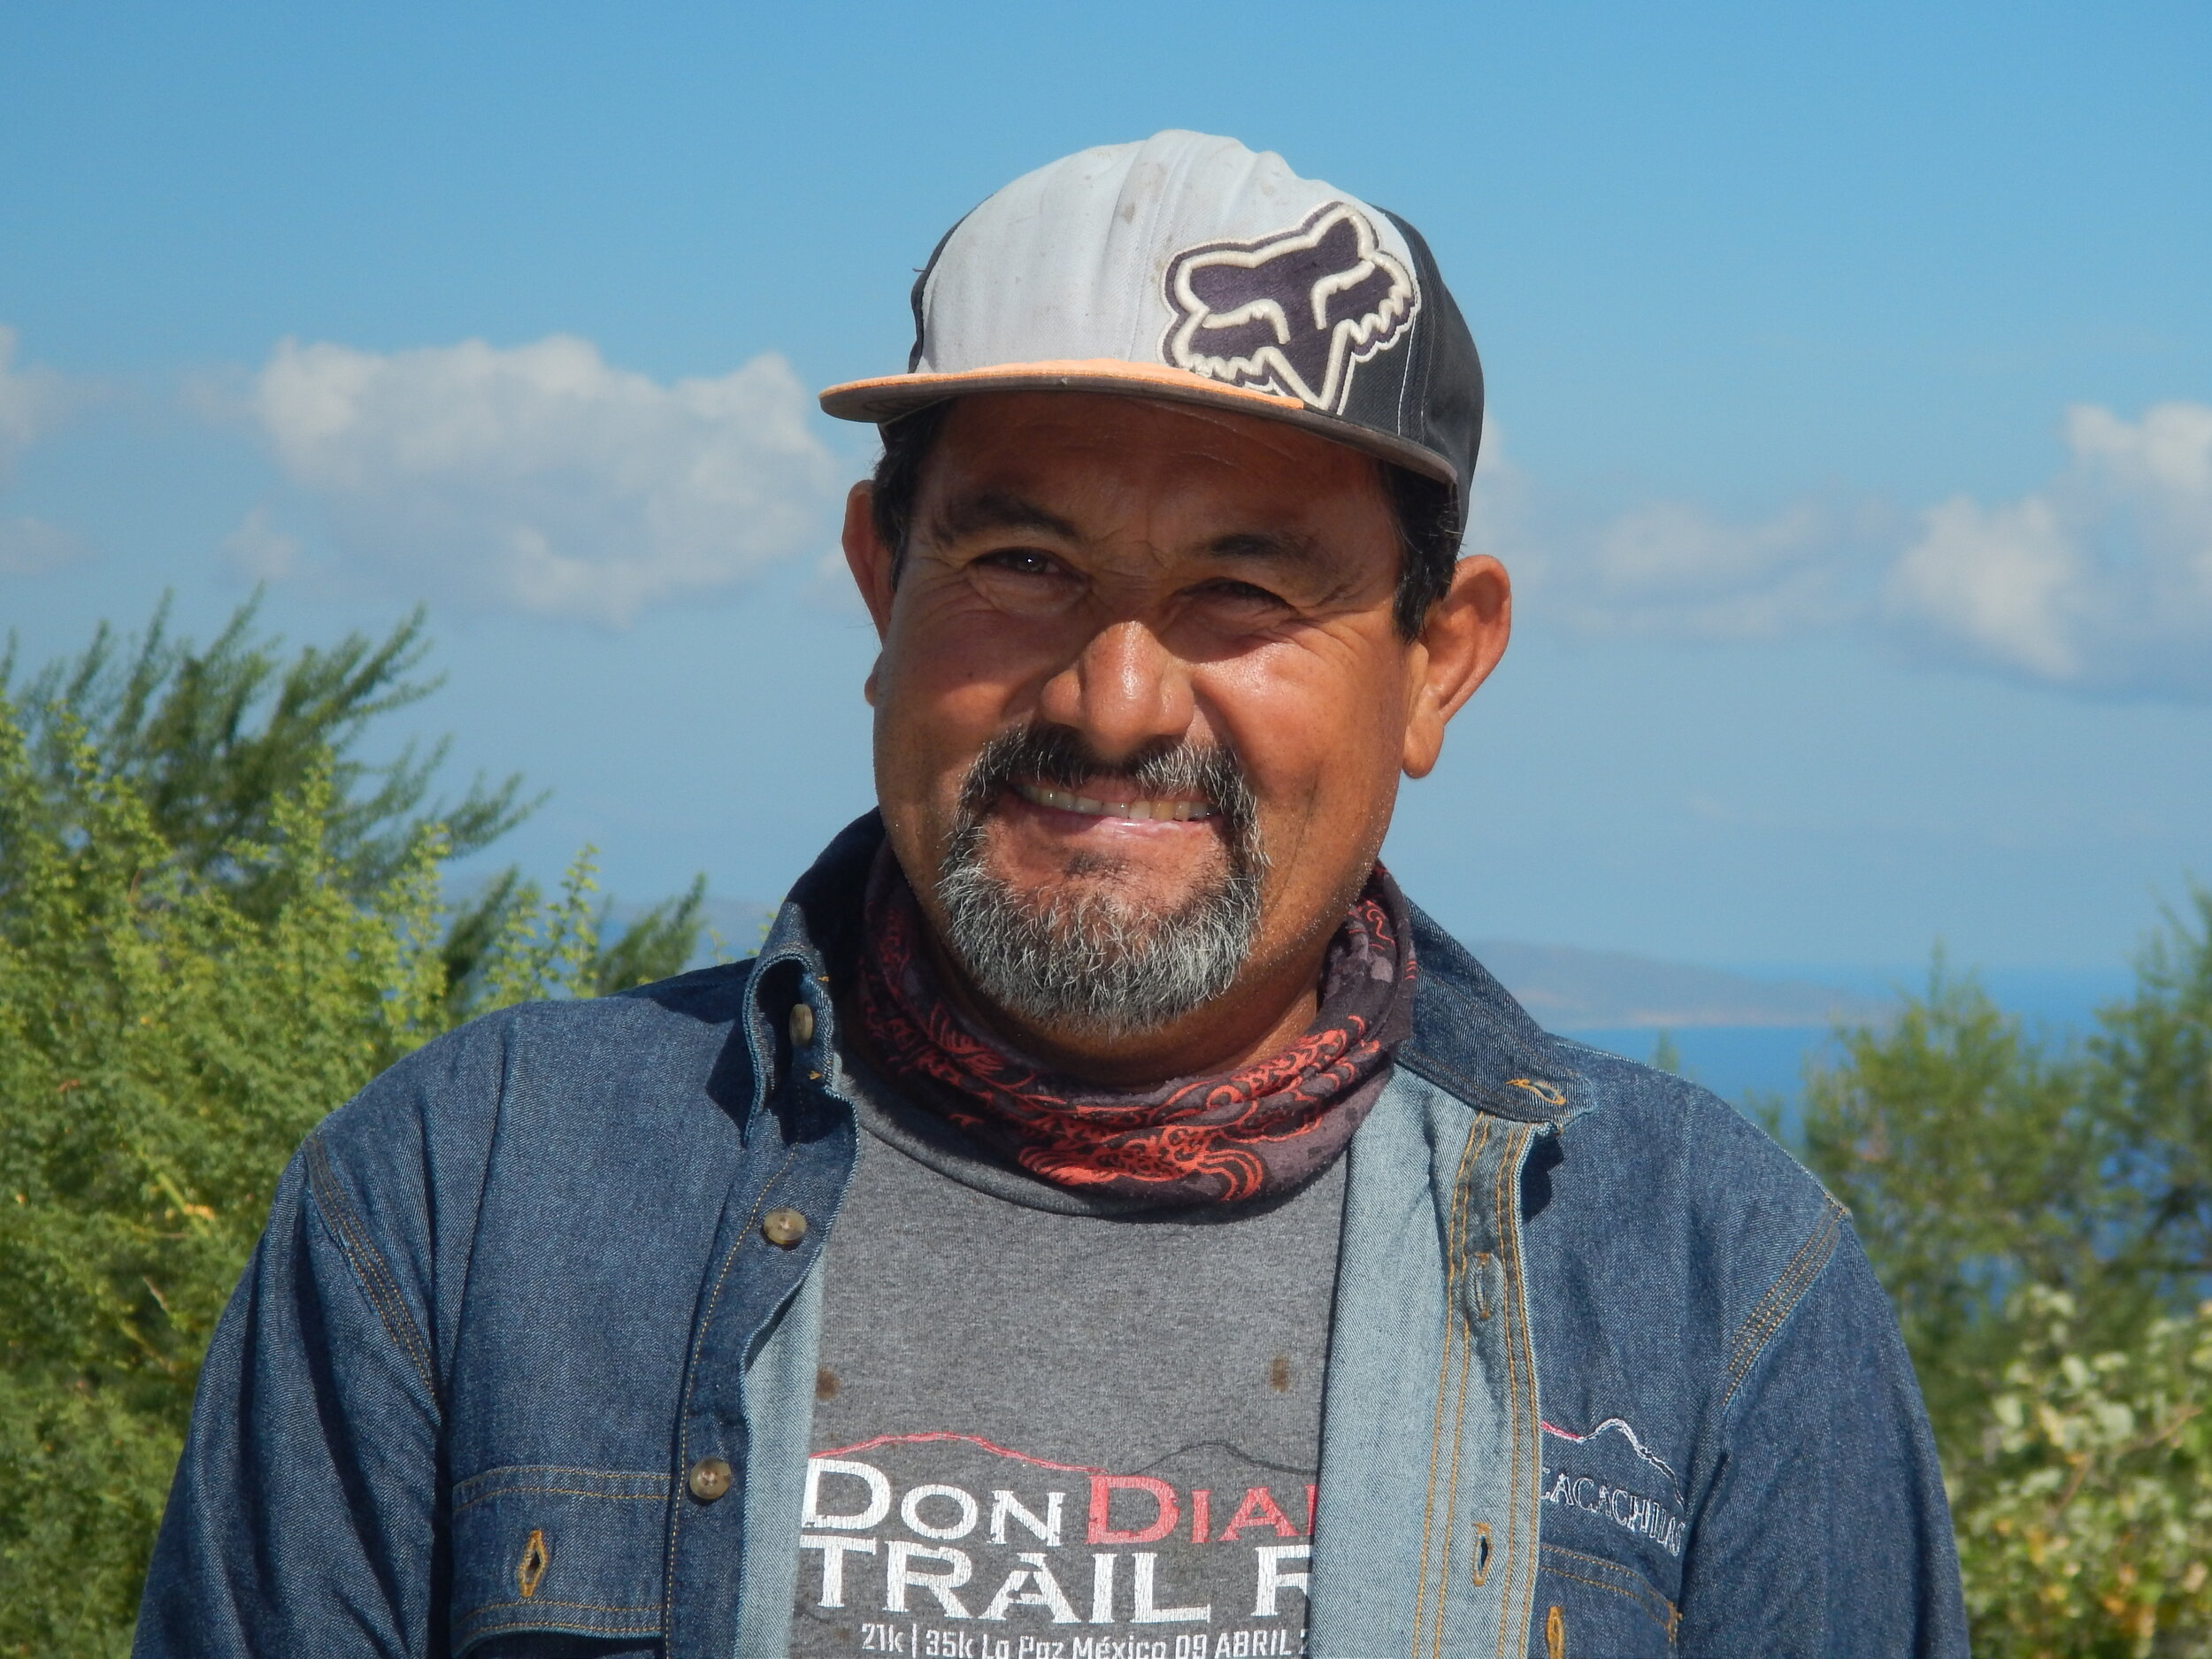 Gustavo Calderon   Gustavo is one of the most experienced members of the team. He is a natural leader, with a whole life of experience, and truly a hard worker.